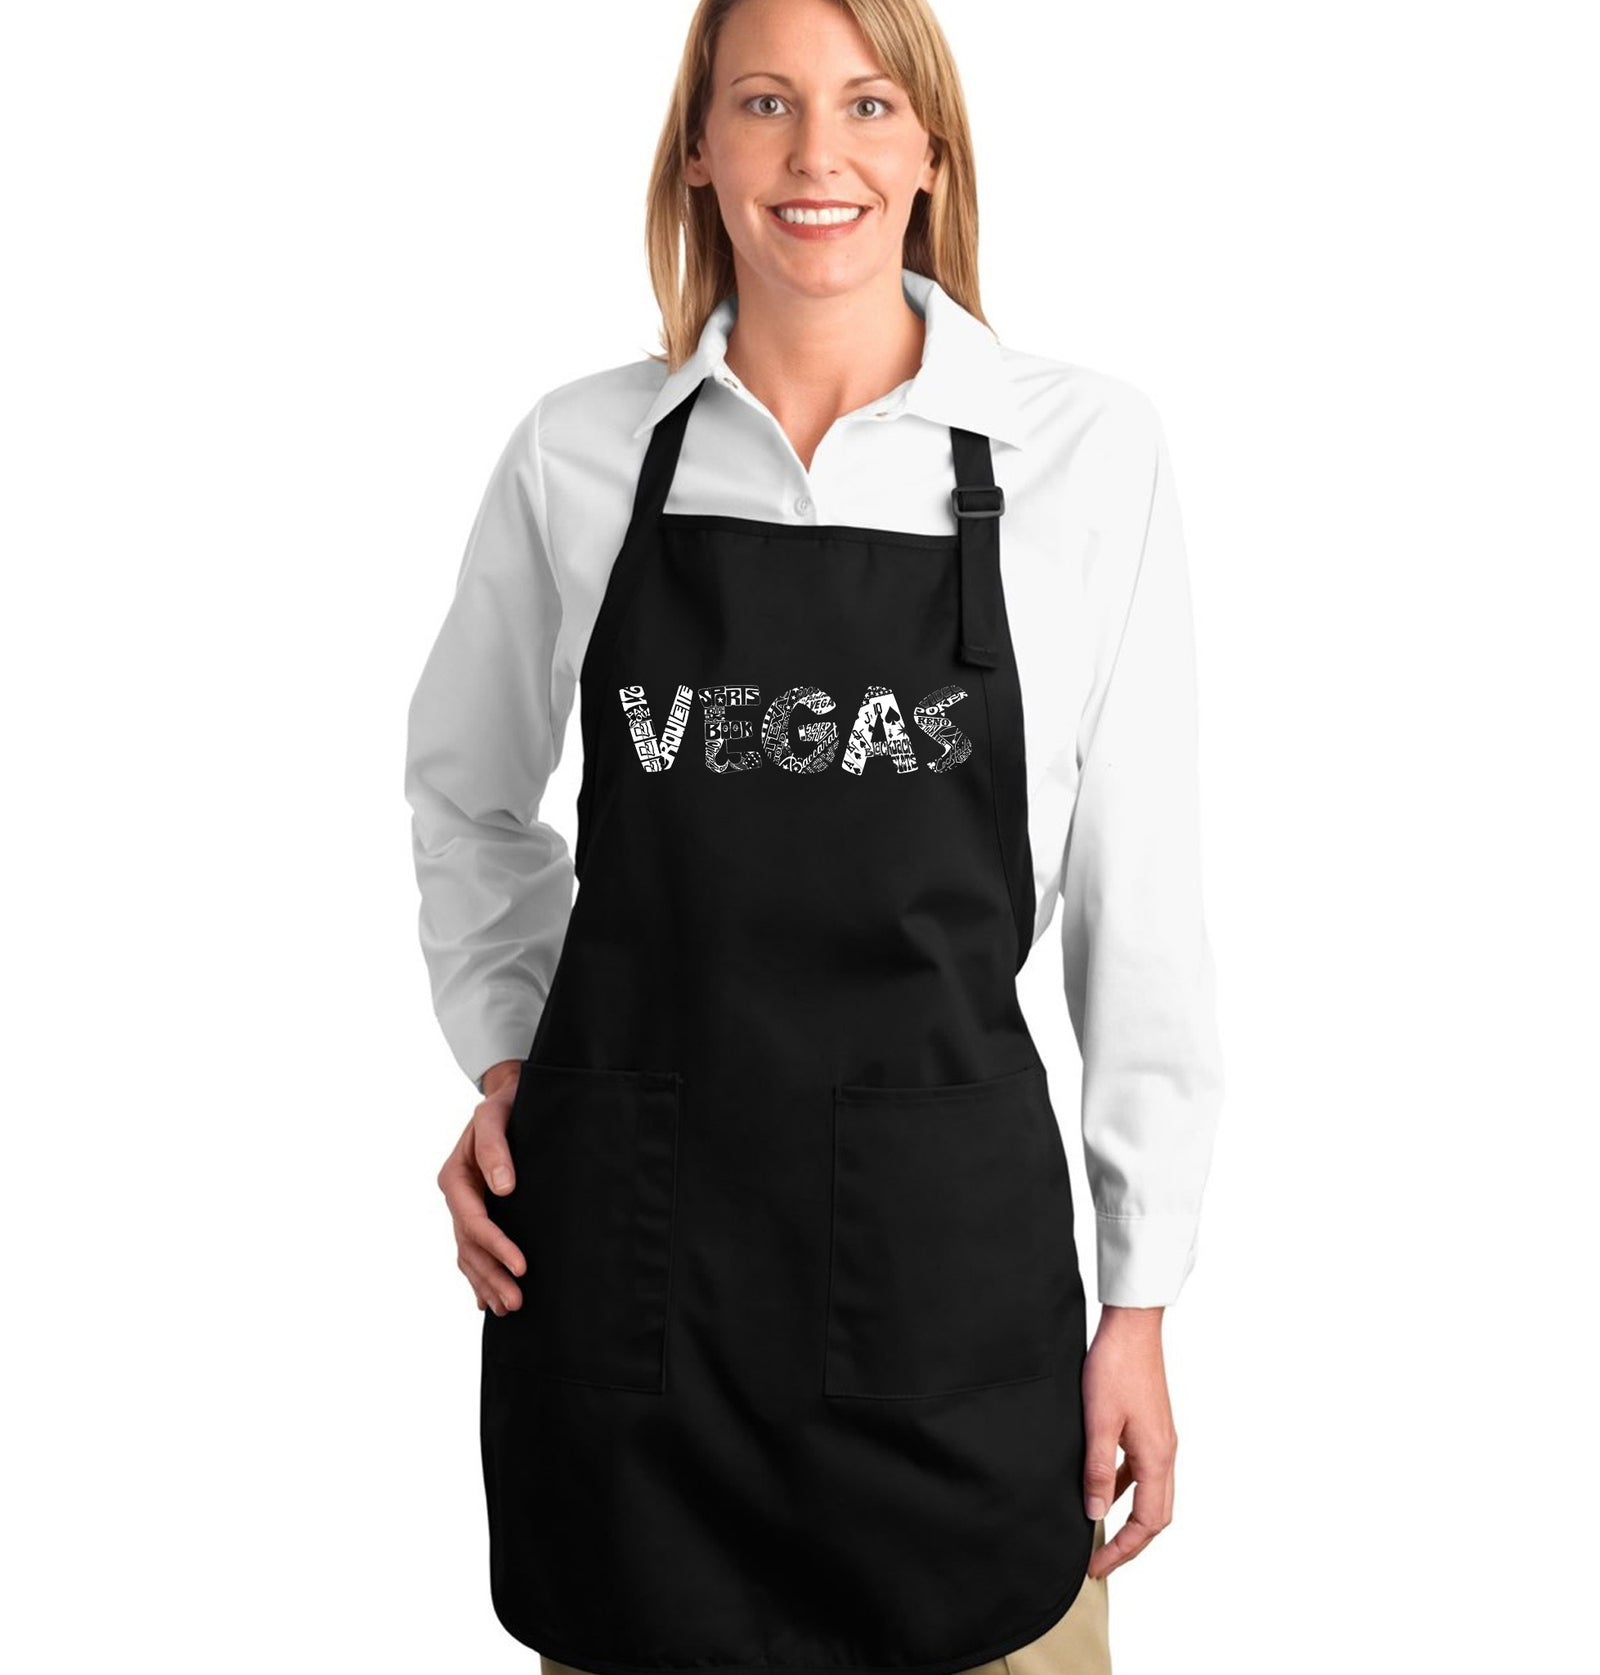 Full Length Apron - VEGAS